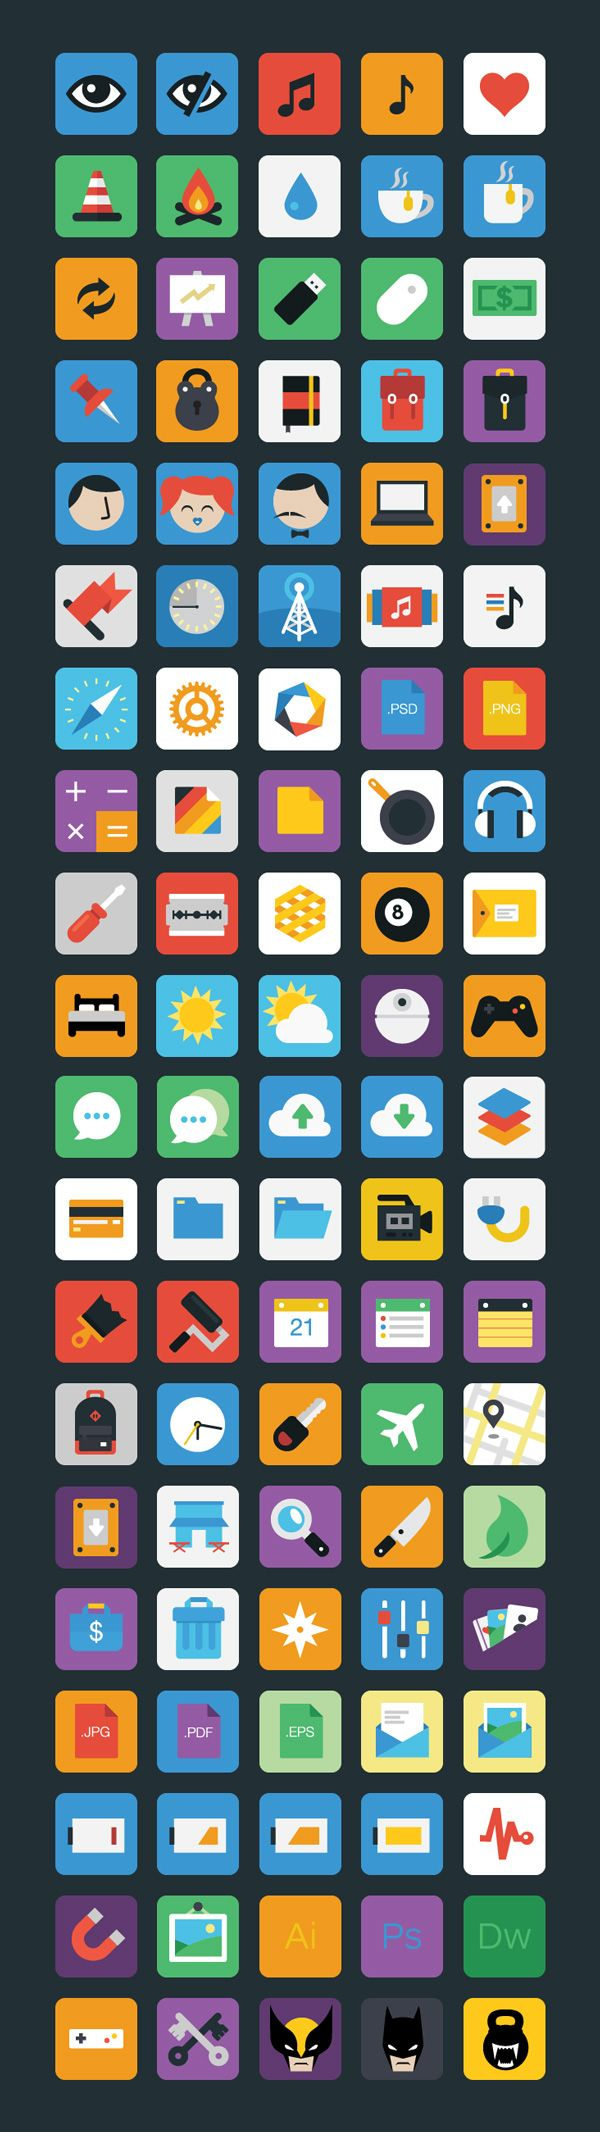 Stylicons flat icons